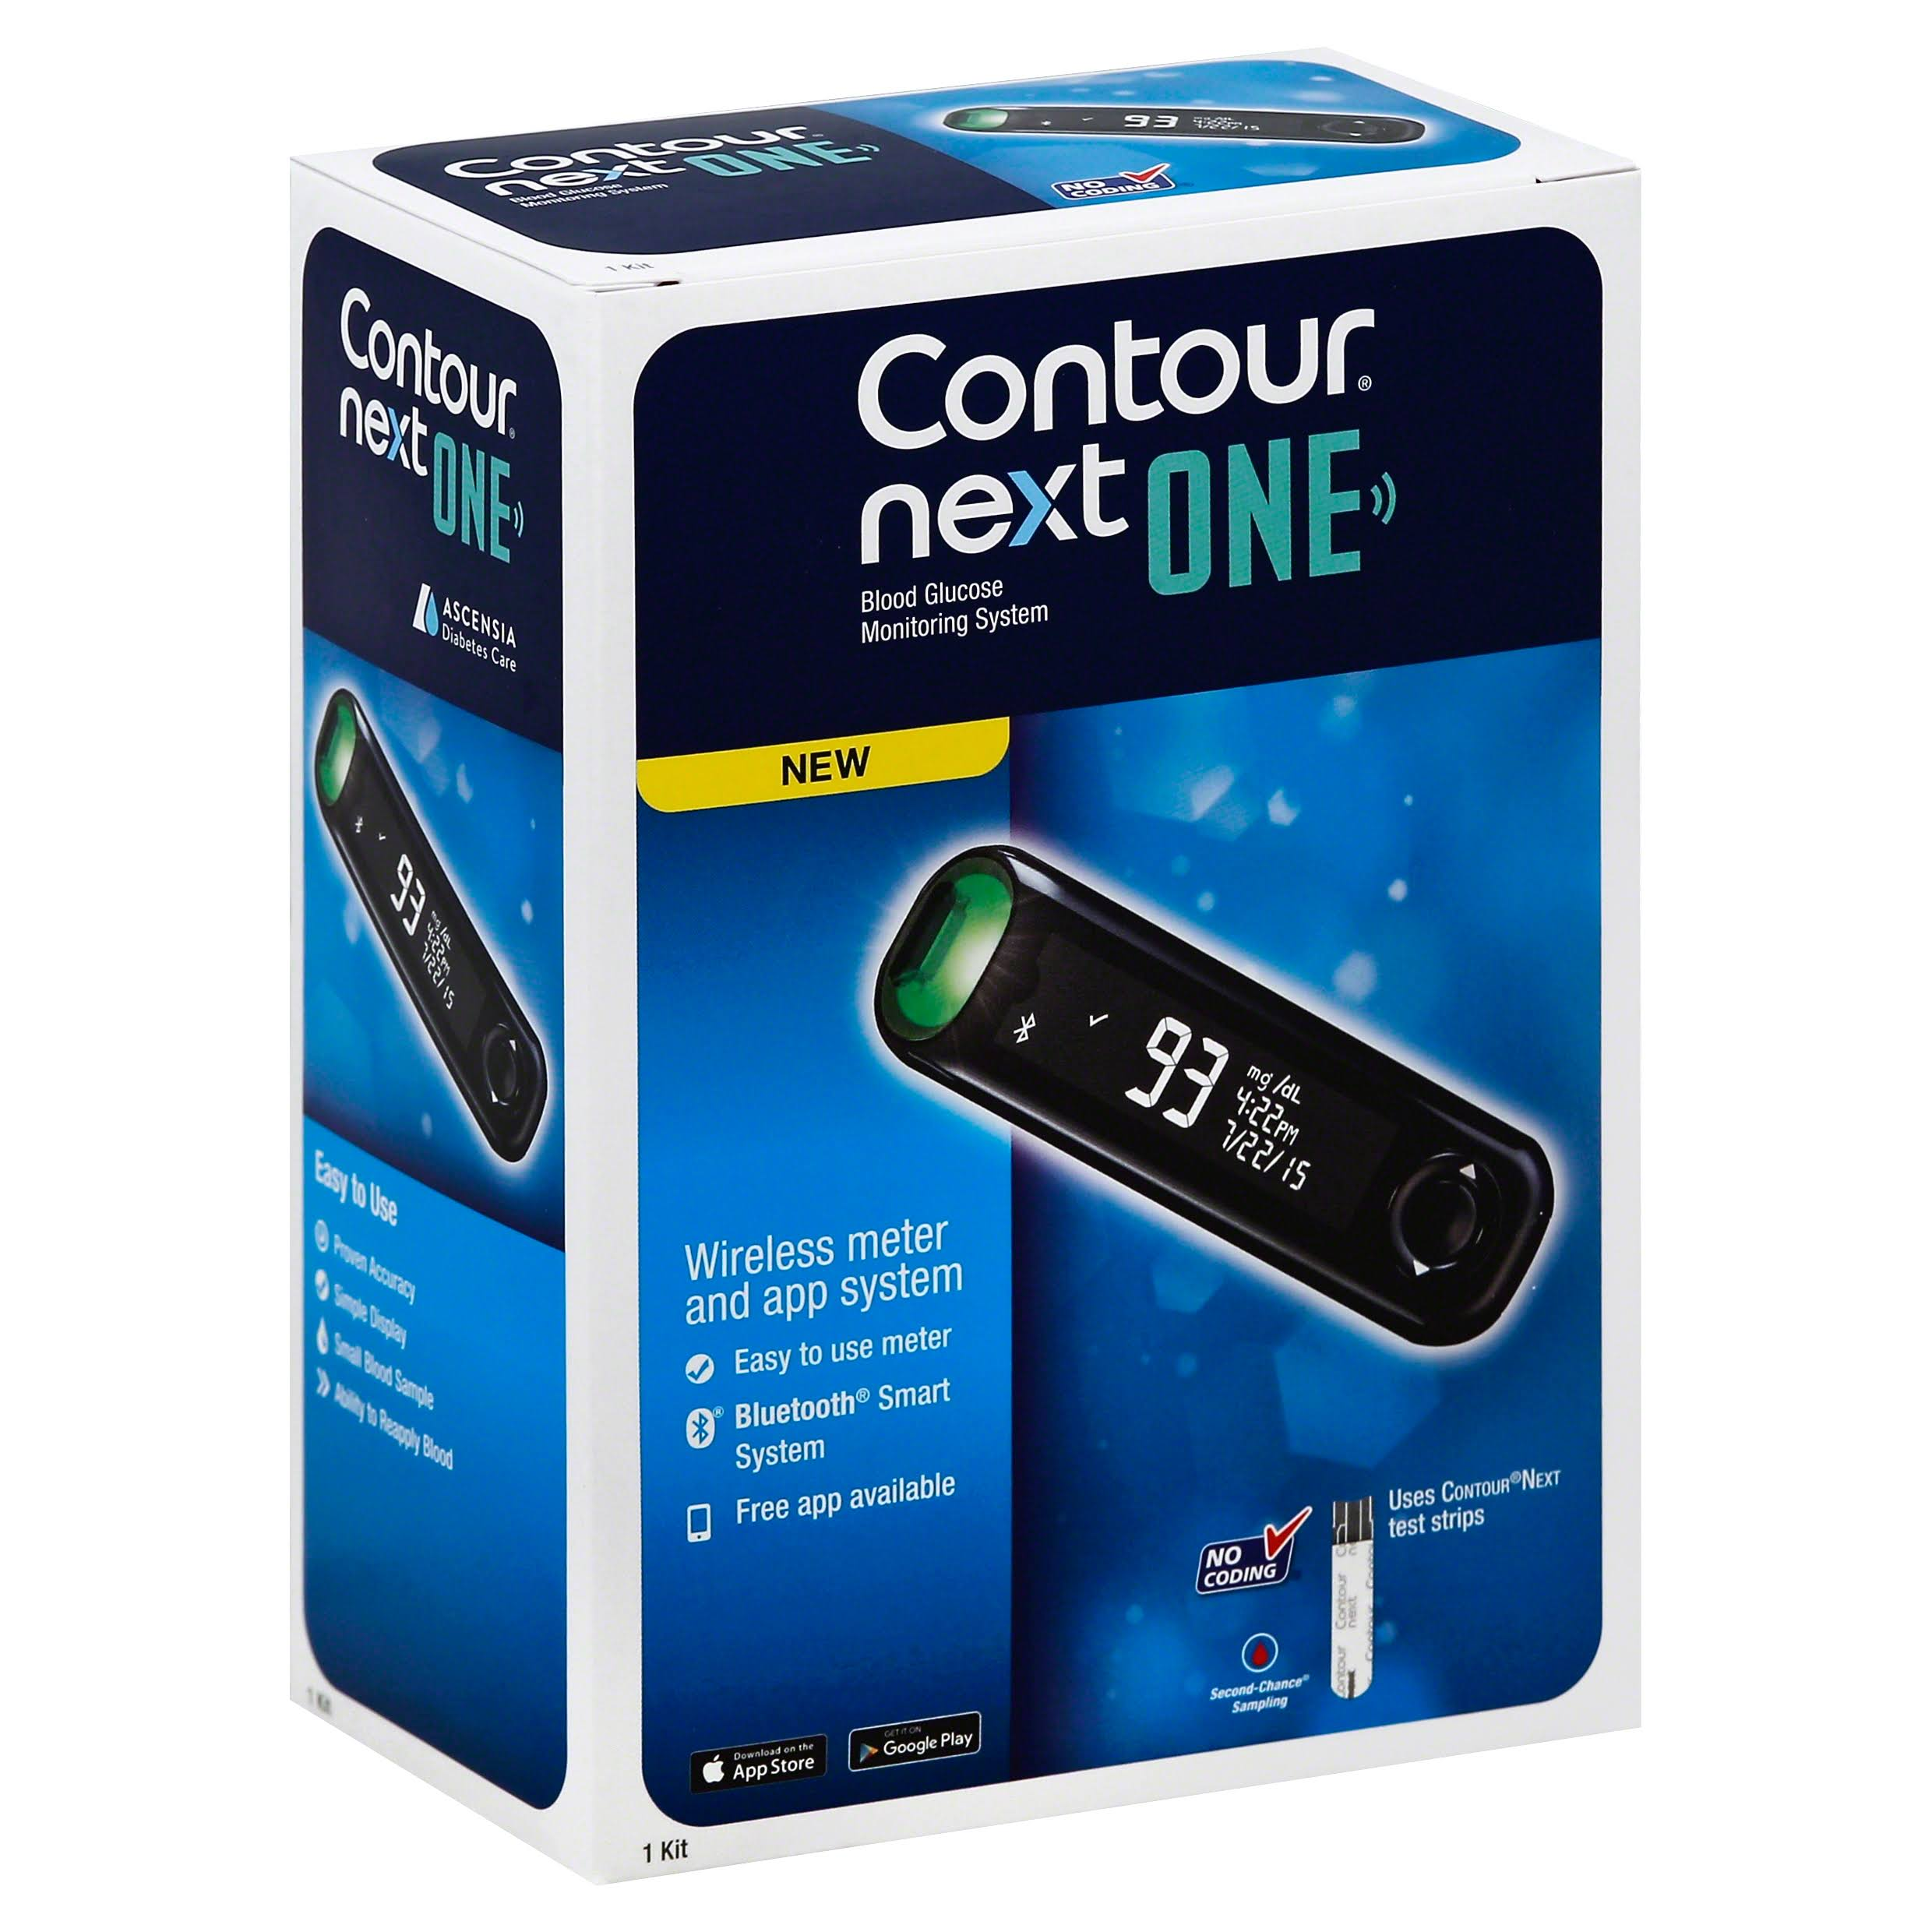 Contour Next One Blood Glucose Meter